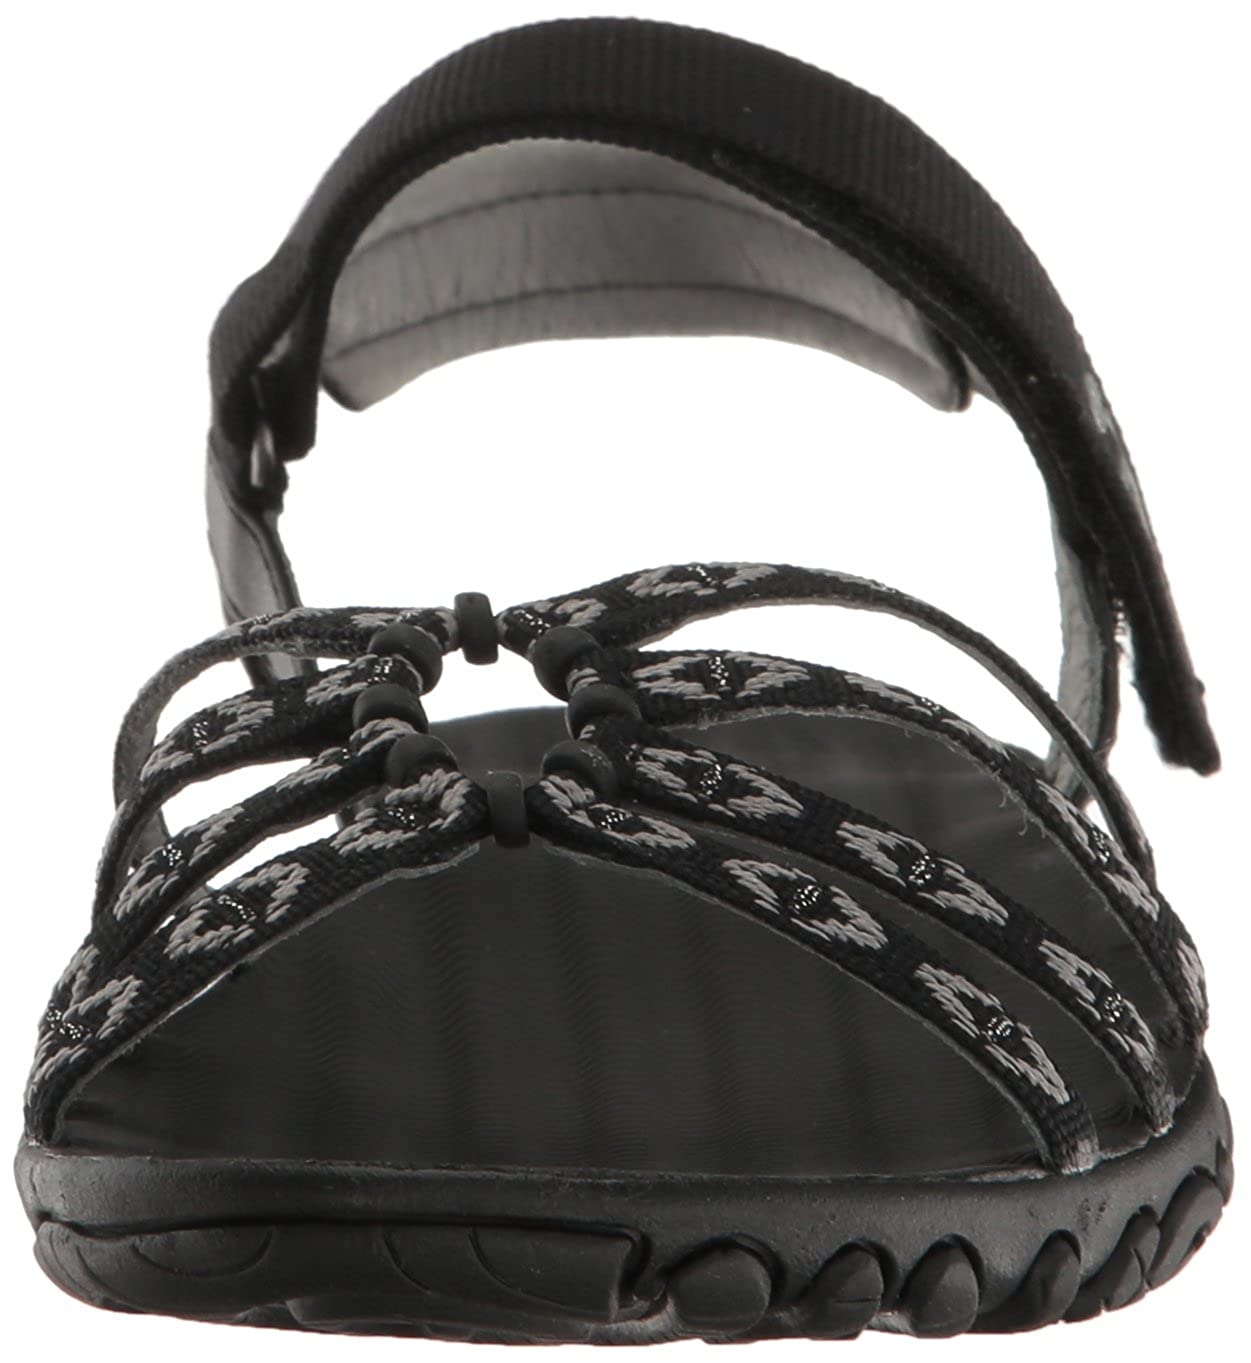 e0189c5361b6 Teva Women s Kayenta Sports and Outdoor Lifestyle Sandal  Amazon.co.uk   Shoes   Bags